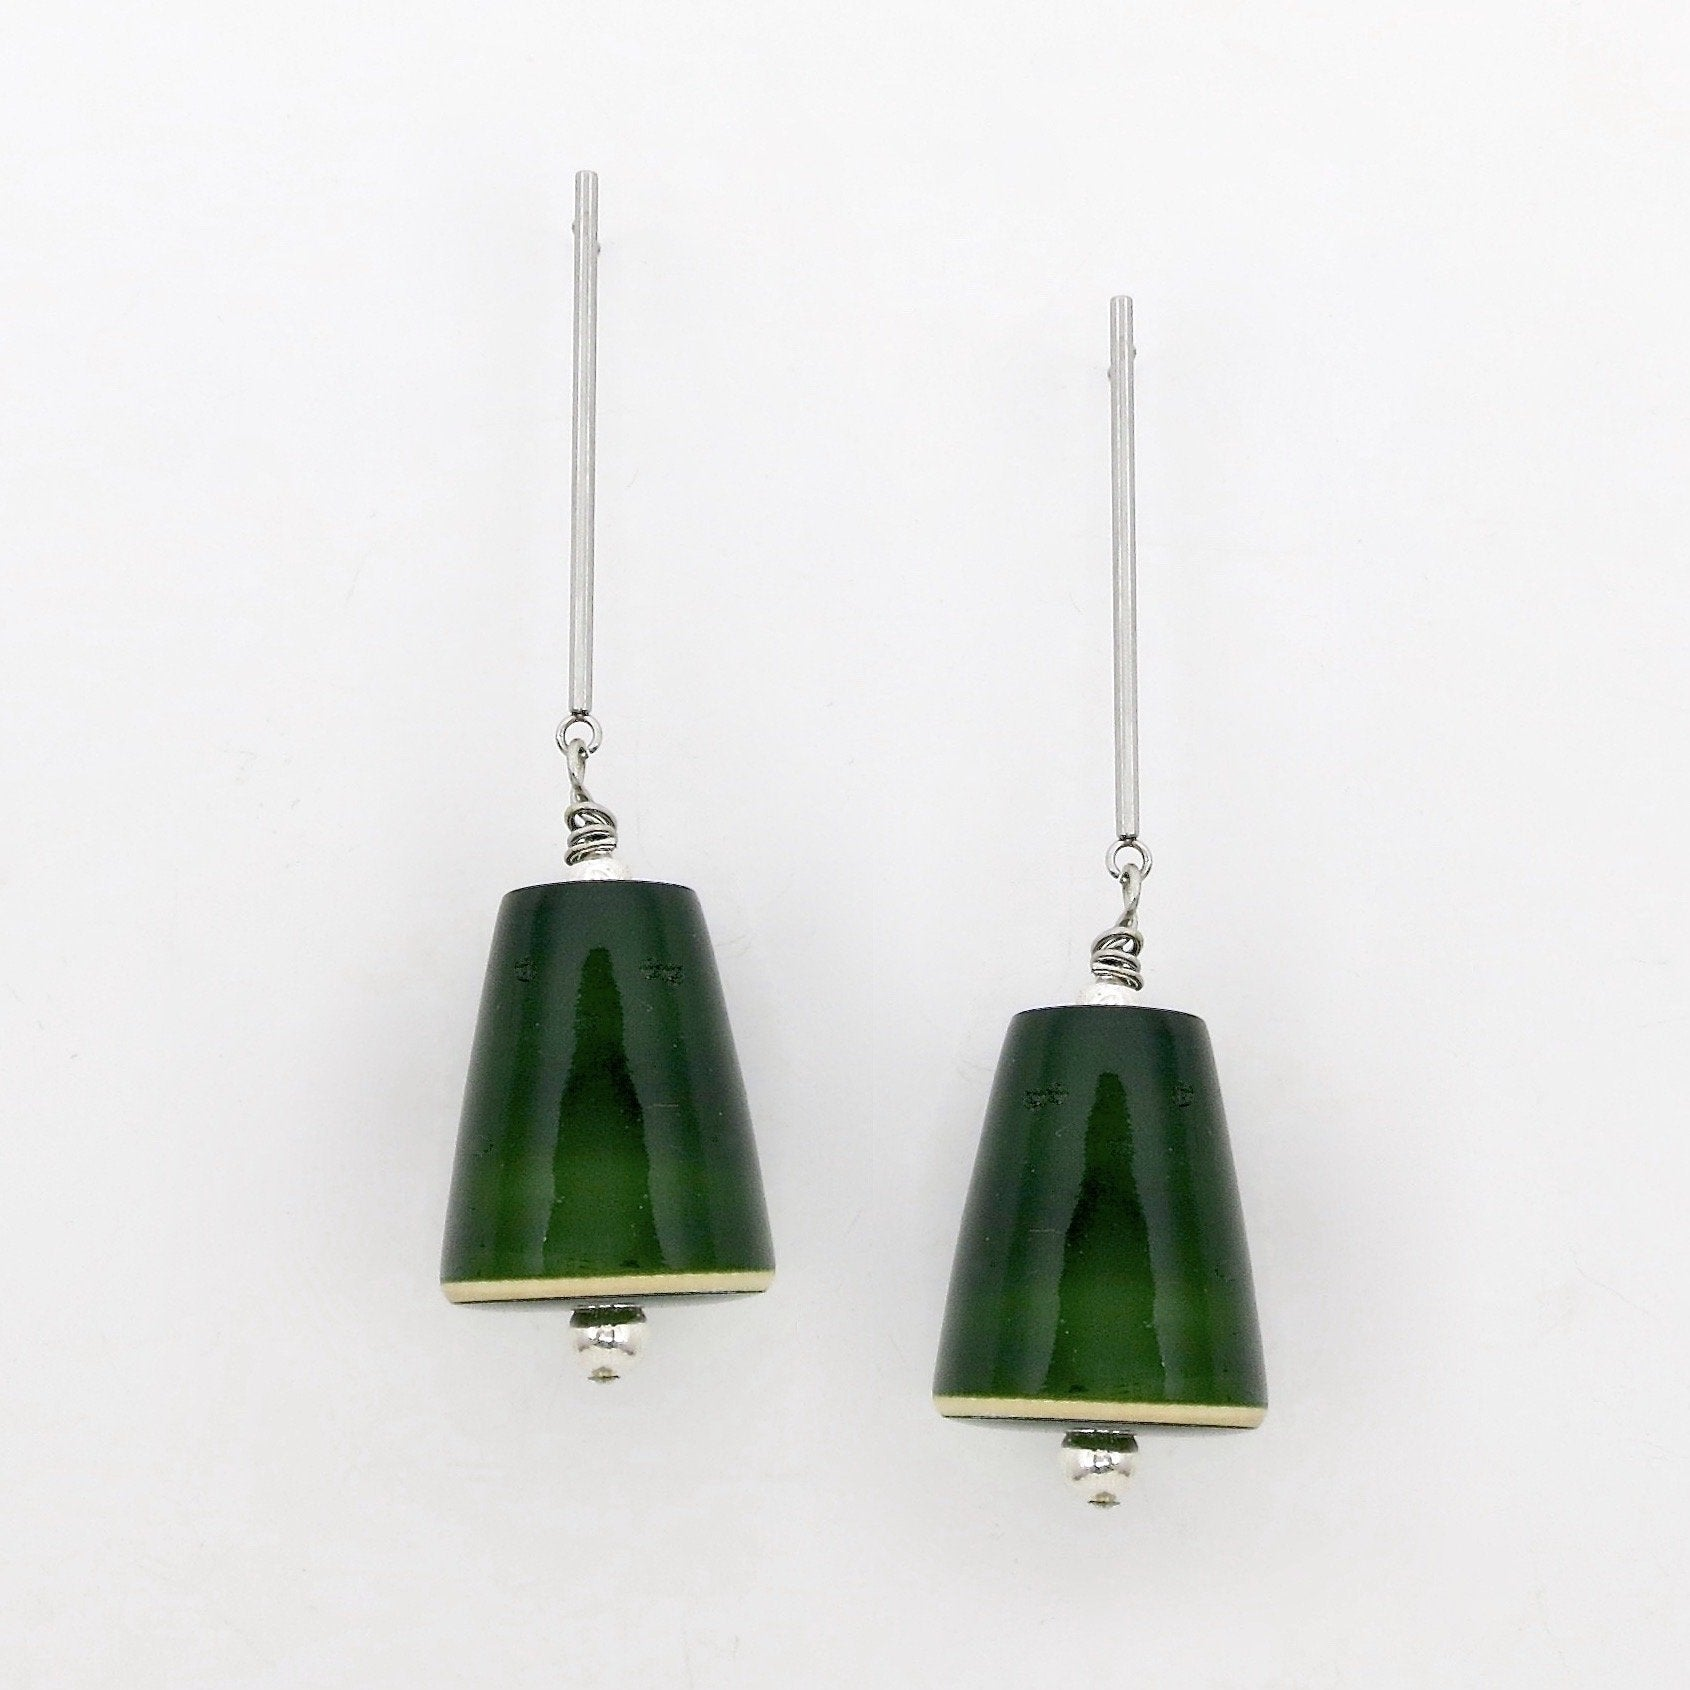 Minimally Chic earrings (available in 4 different colors) - Craft Stories